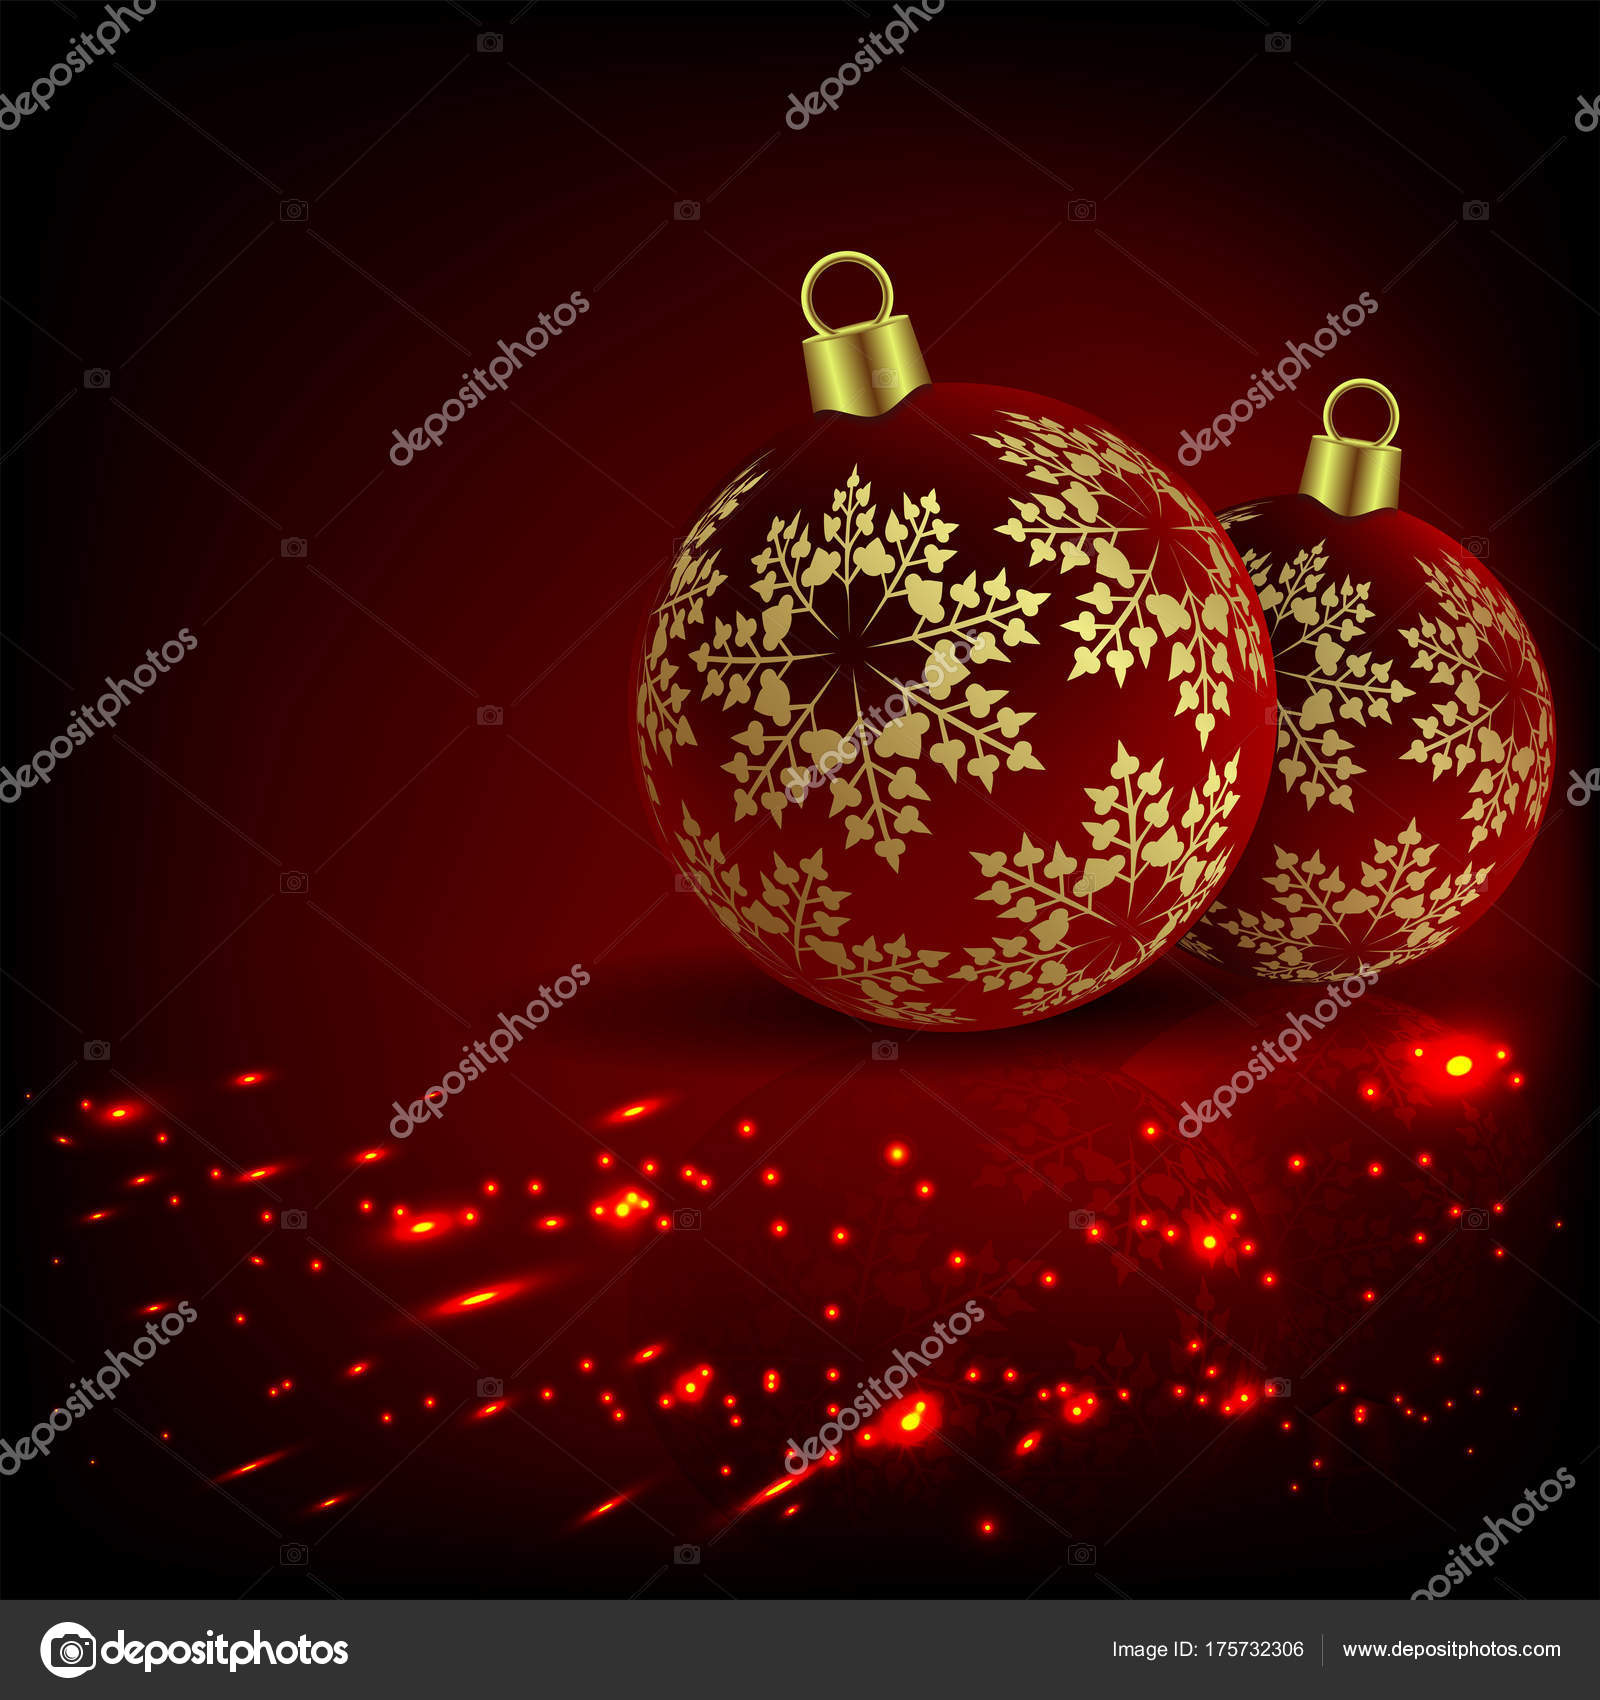 Christmas Red Fiery Design With Two Balls And Golden Snowflakes Vector By Altadi3ukr